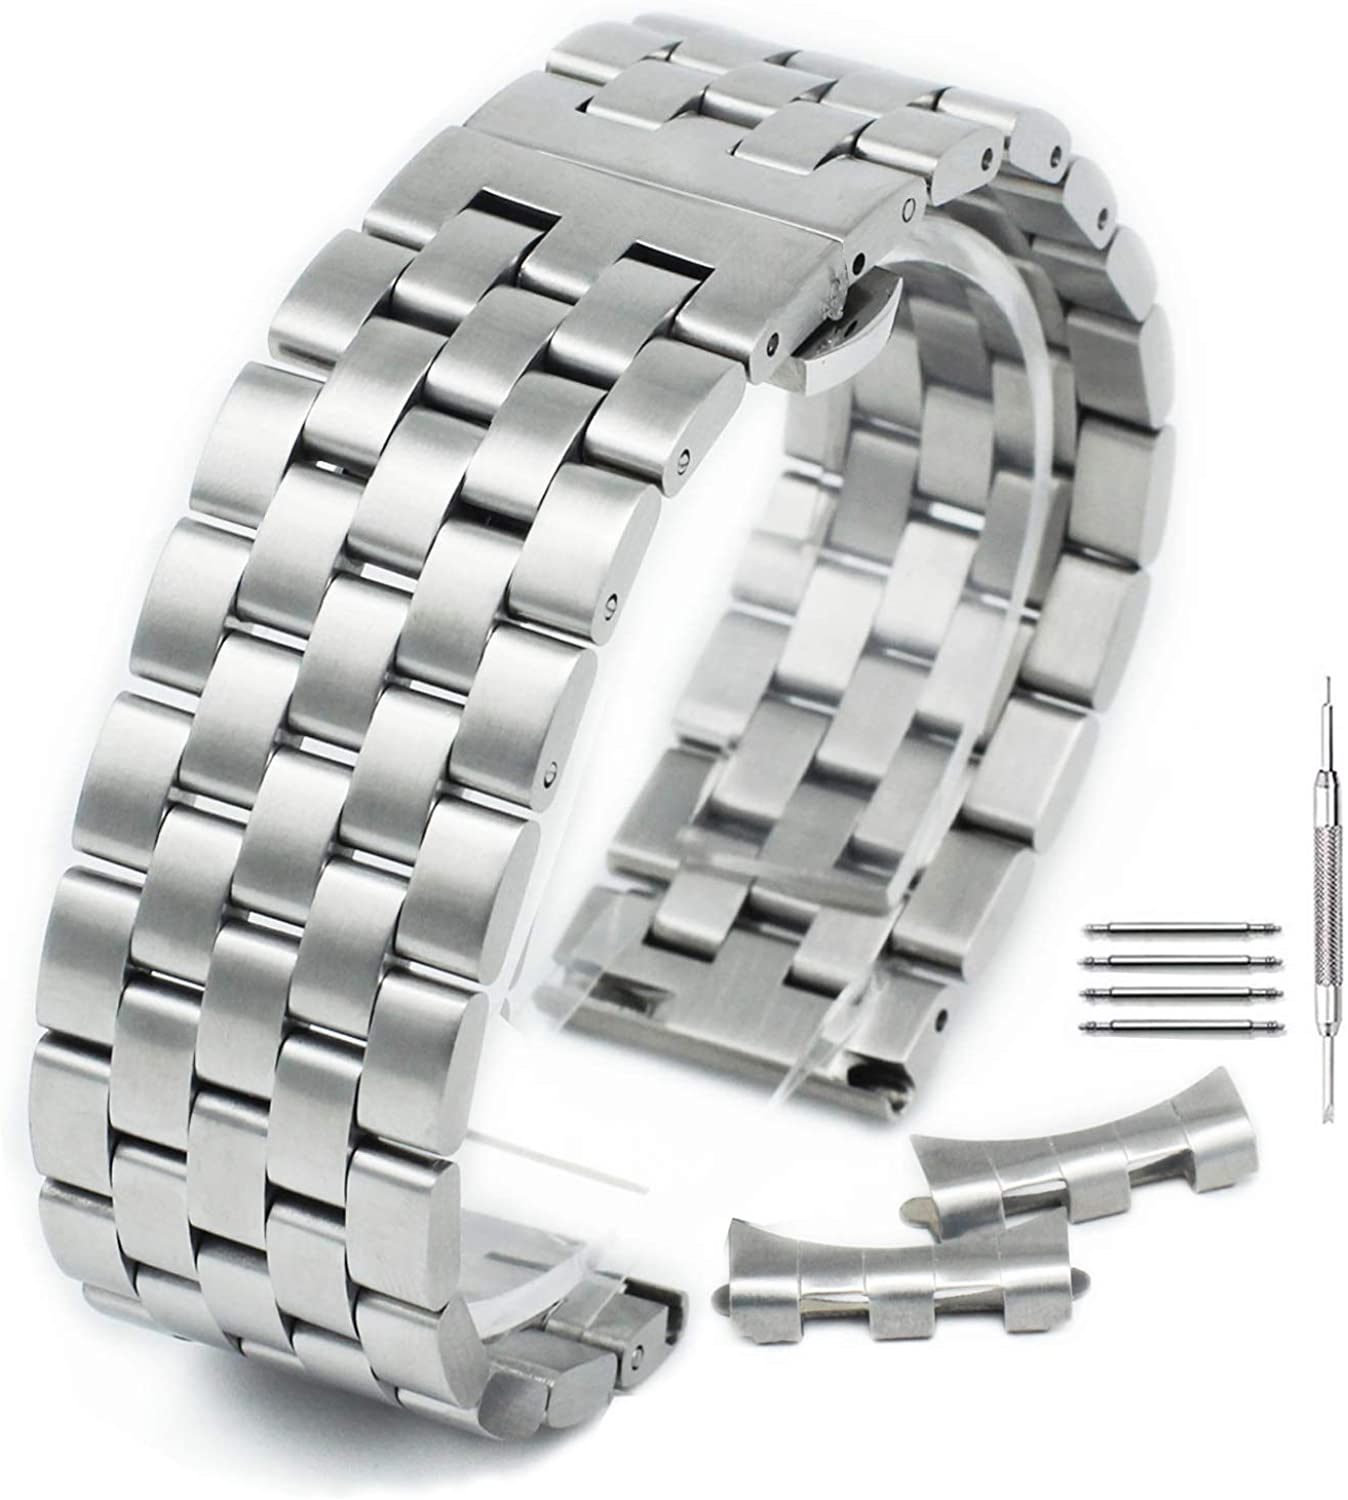 Curved Solid Stainless Steel Brushed Metal Watch Band Strap Buckle Clasp18mm-22mm Silver